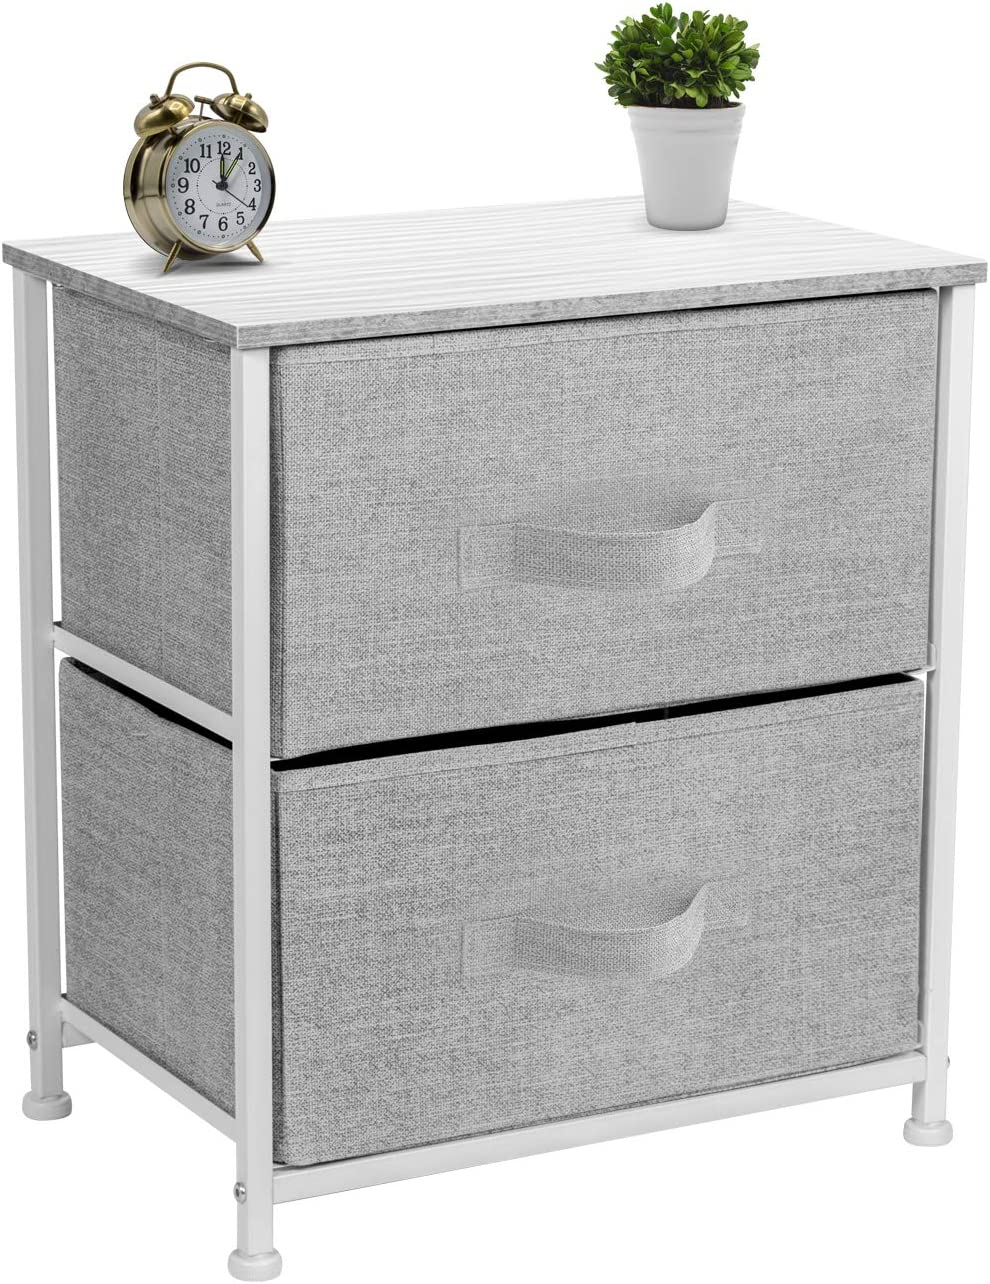 Sorbus Nightstand with 2 Drawers – Bedside Furniture Accent End Table Chest for Home, Bedroom Accessories, Office, College Dorm, Steel Frame, Wood Top, Easy Pull Fabric Bins White Gray